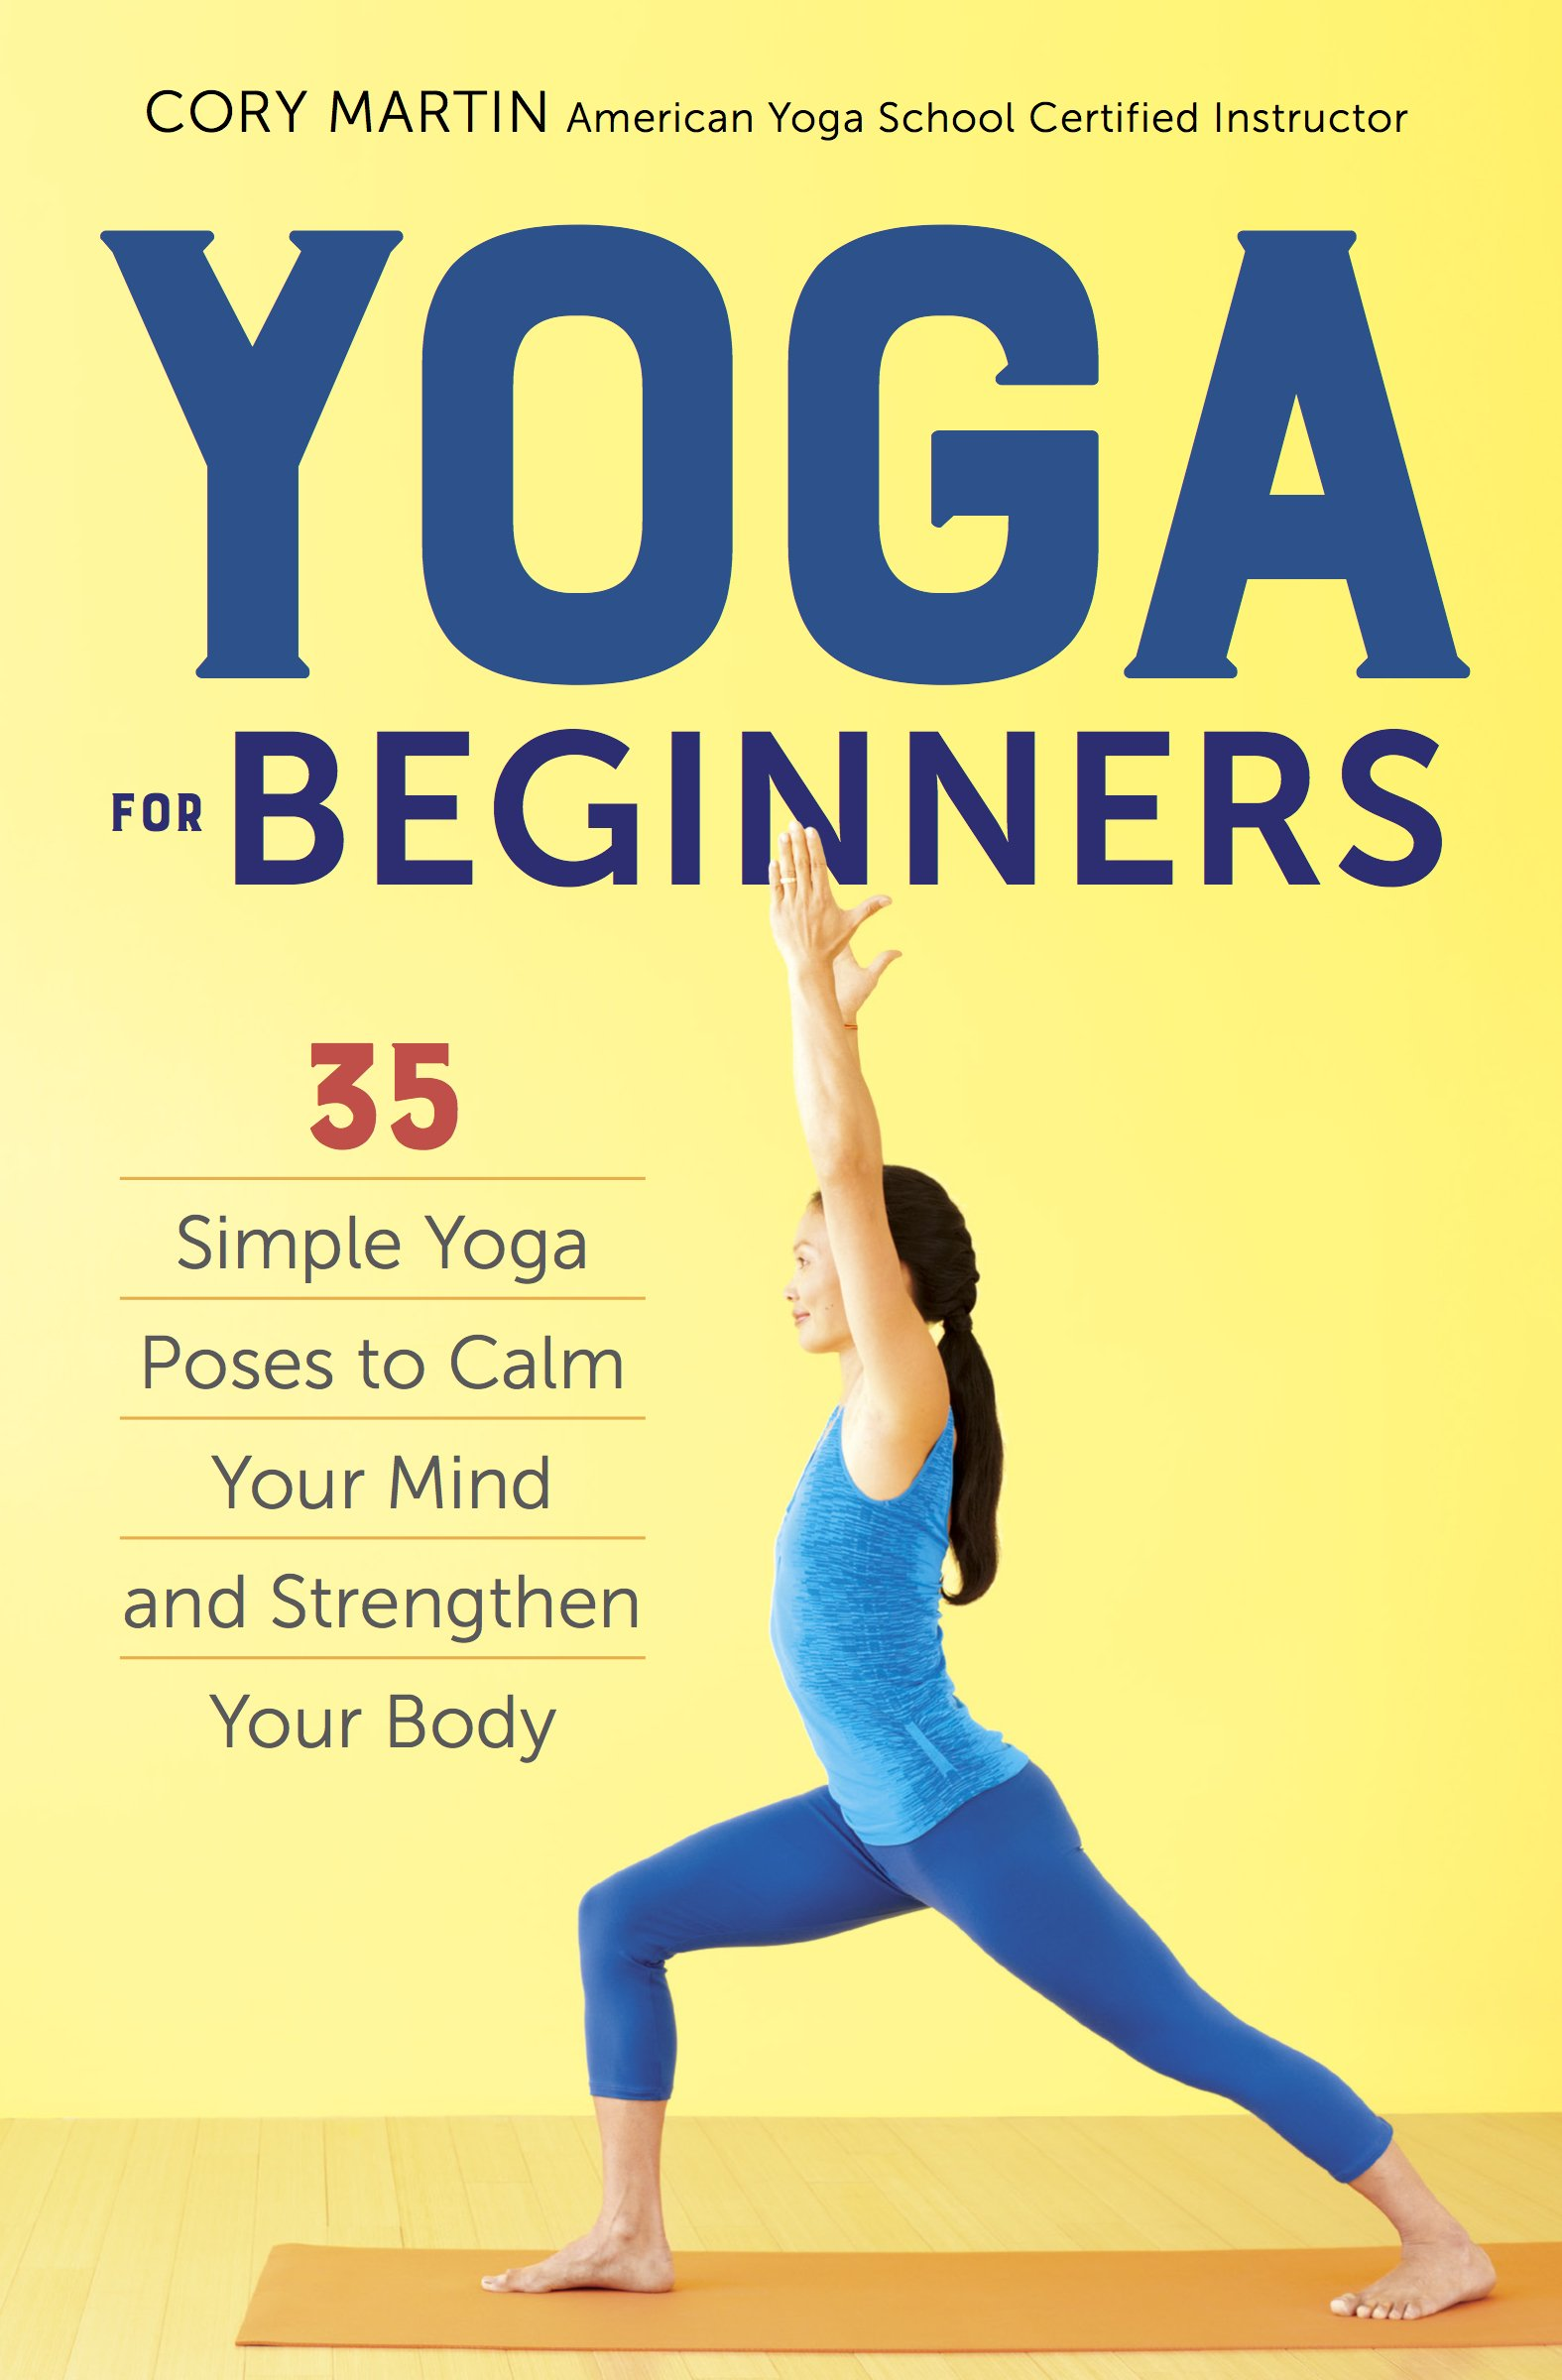 Yoga For Beginners Simple Poses To Calm Your Mind And Strengthen Body Cory Martin 9781623156466 Amazon Books